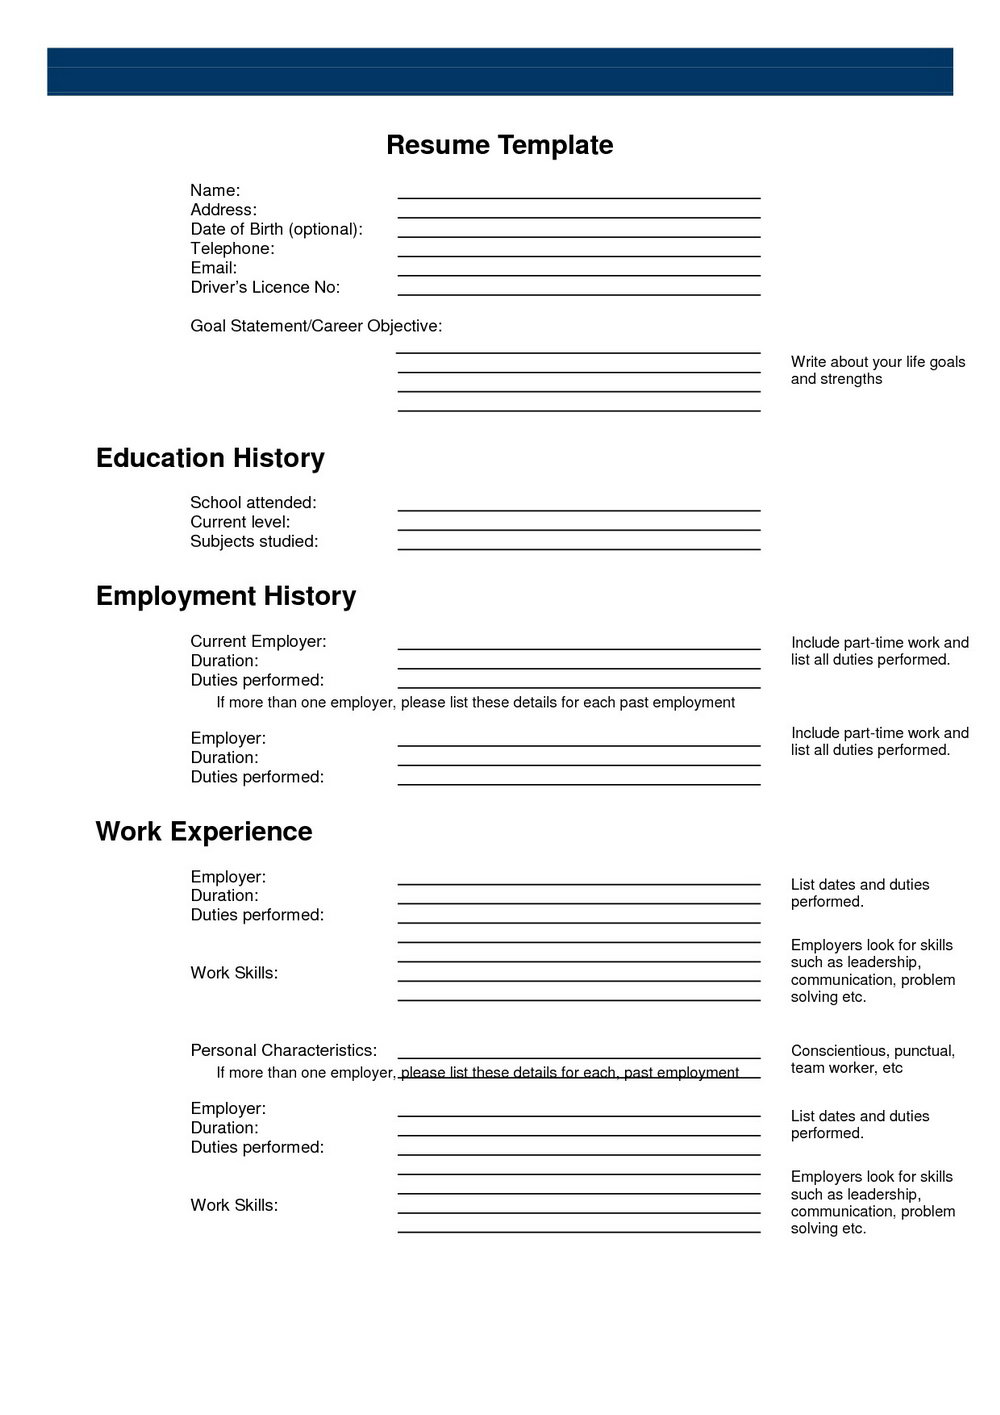 Blank Resume Form For Job Application Forms Njyynq